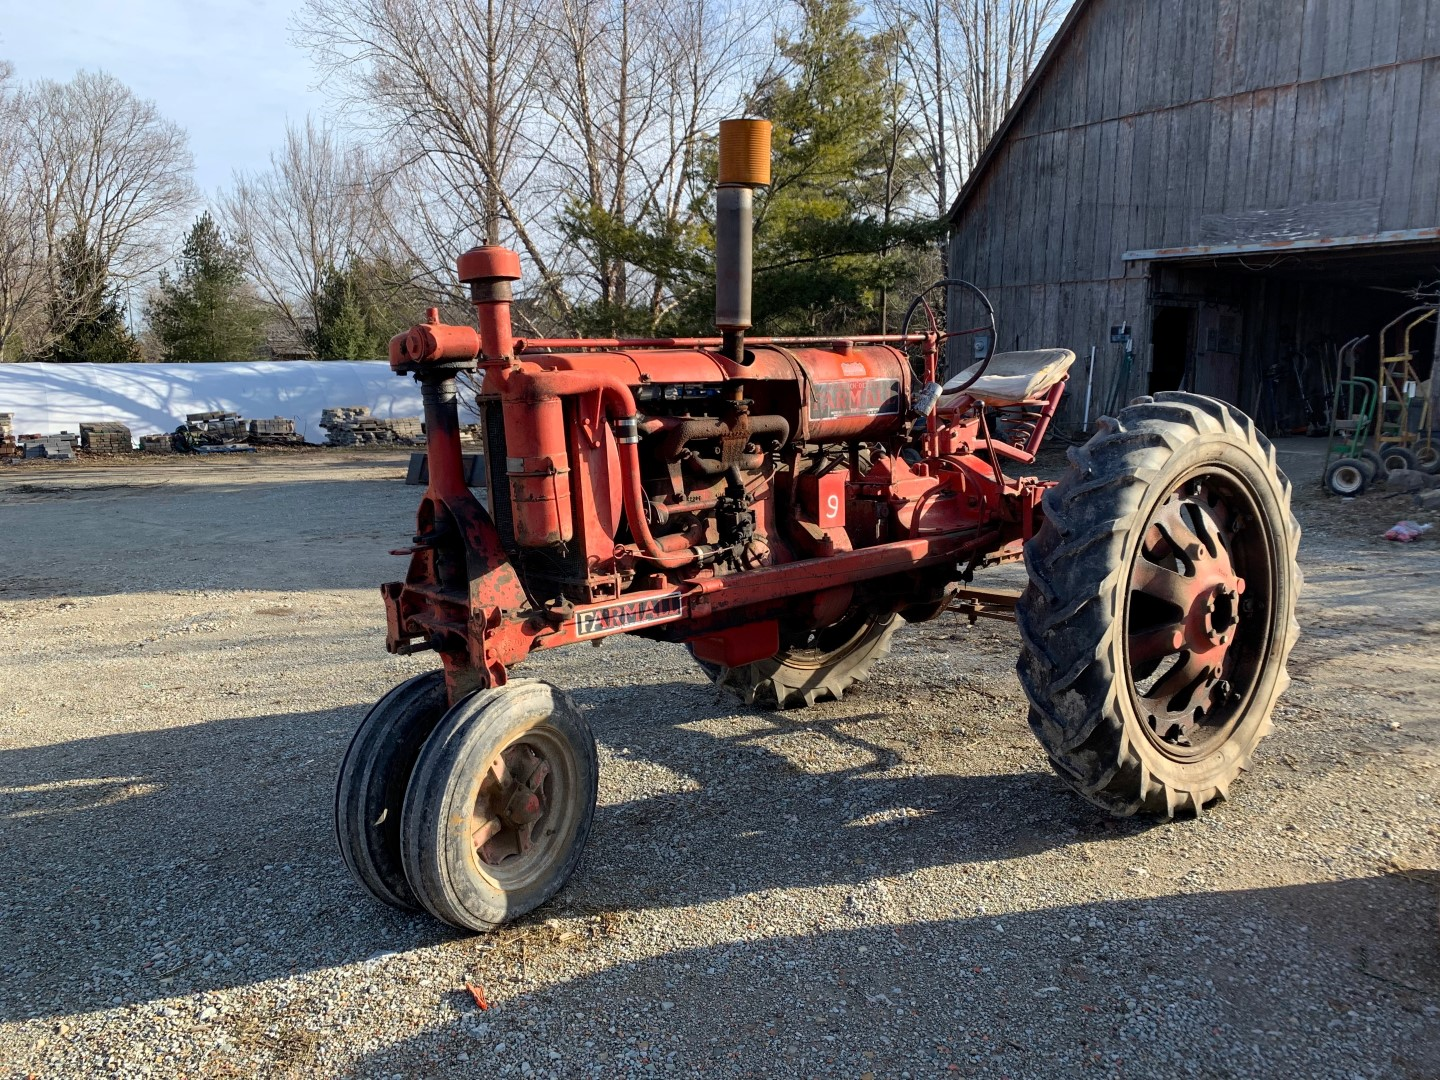 Stonycreek Farm Auction in Noblesville, IN - Key Auctioneers